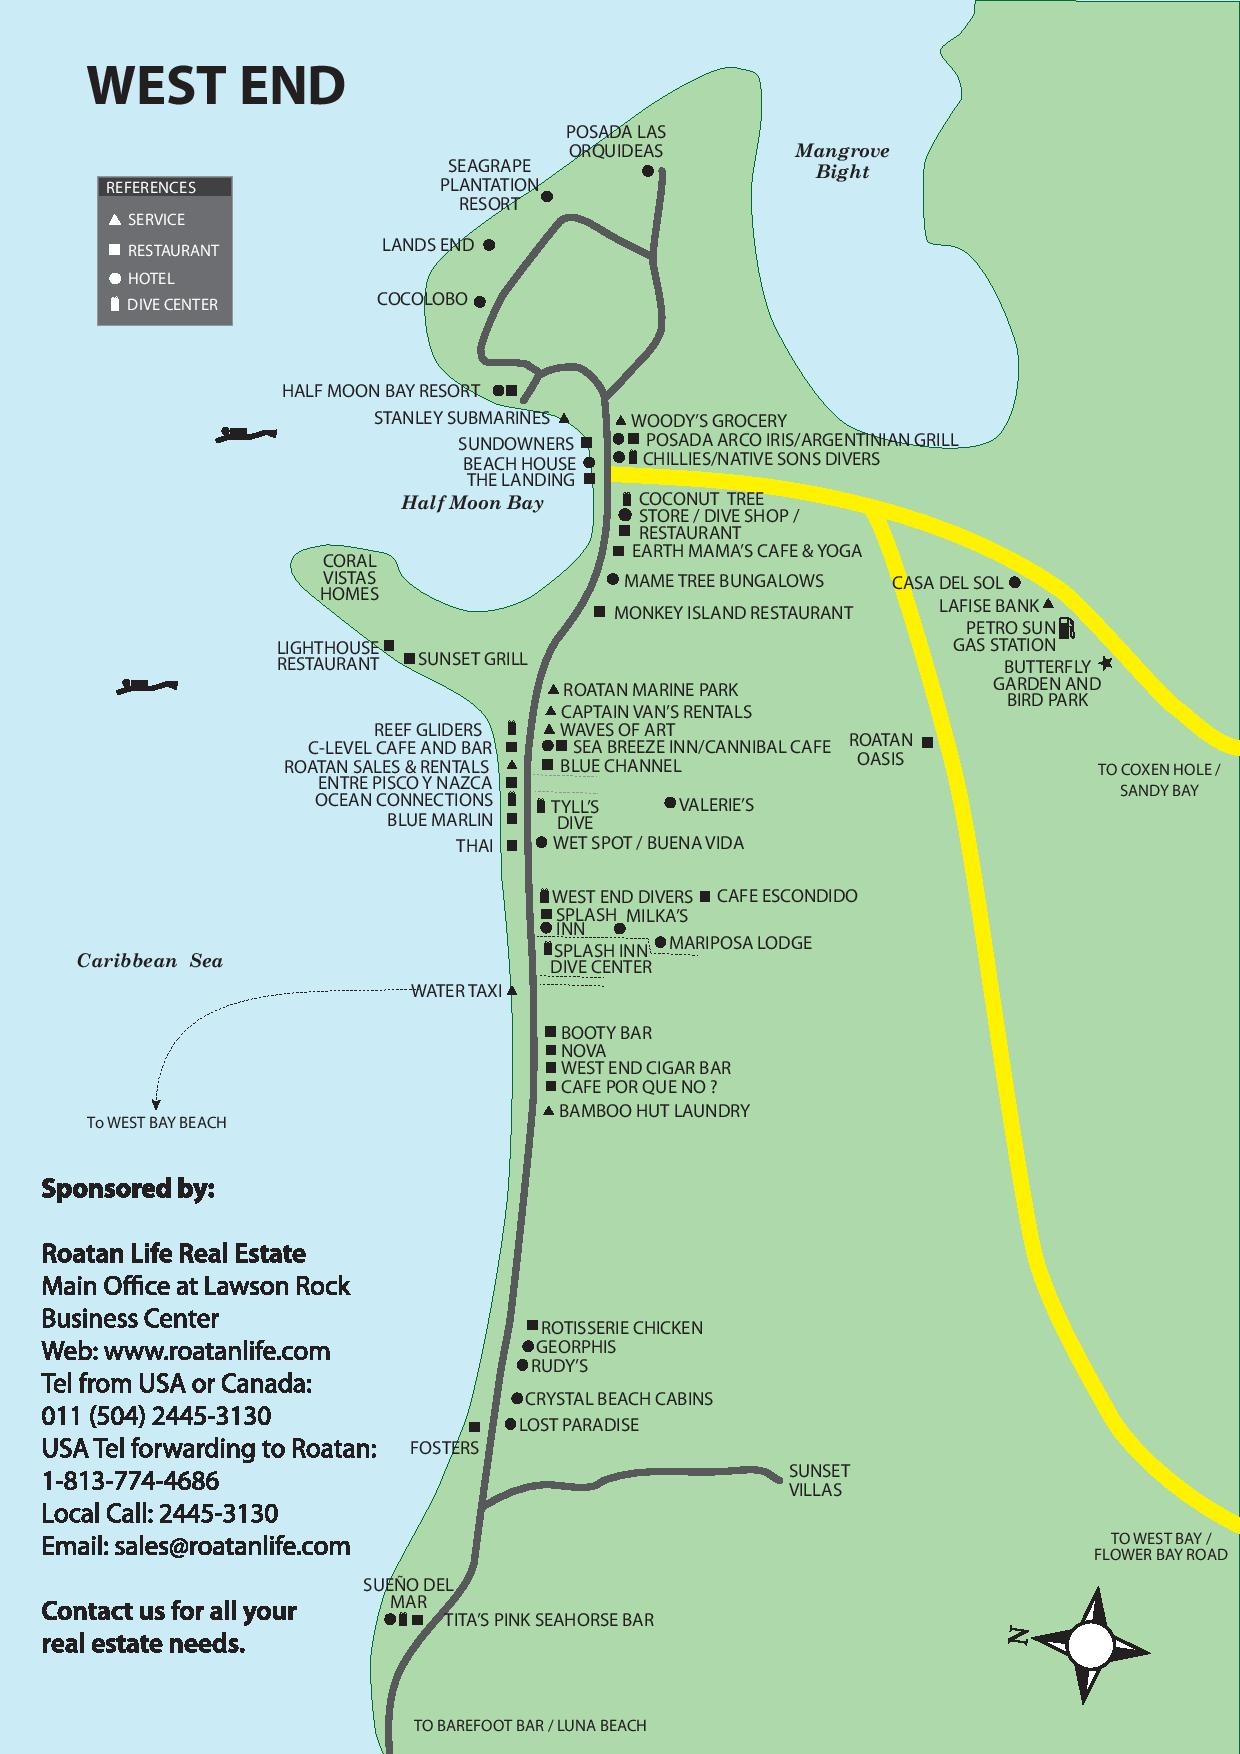 West End Roatan map from Roatan Life Real Estate